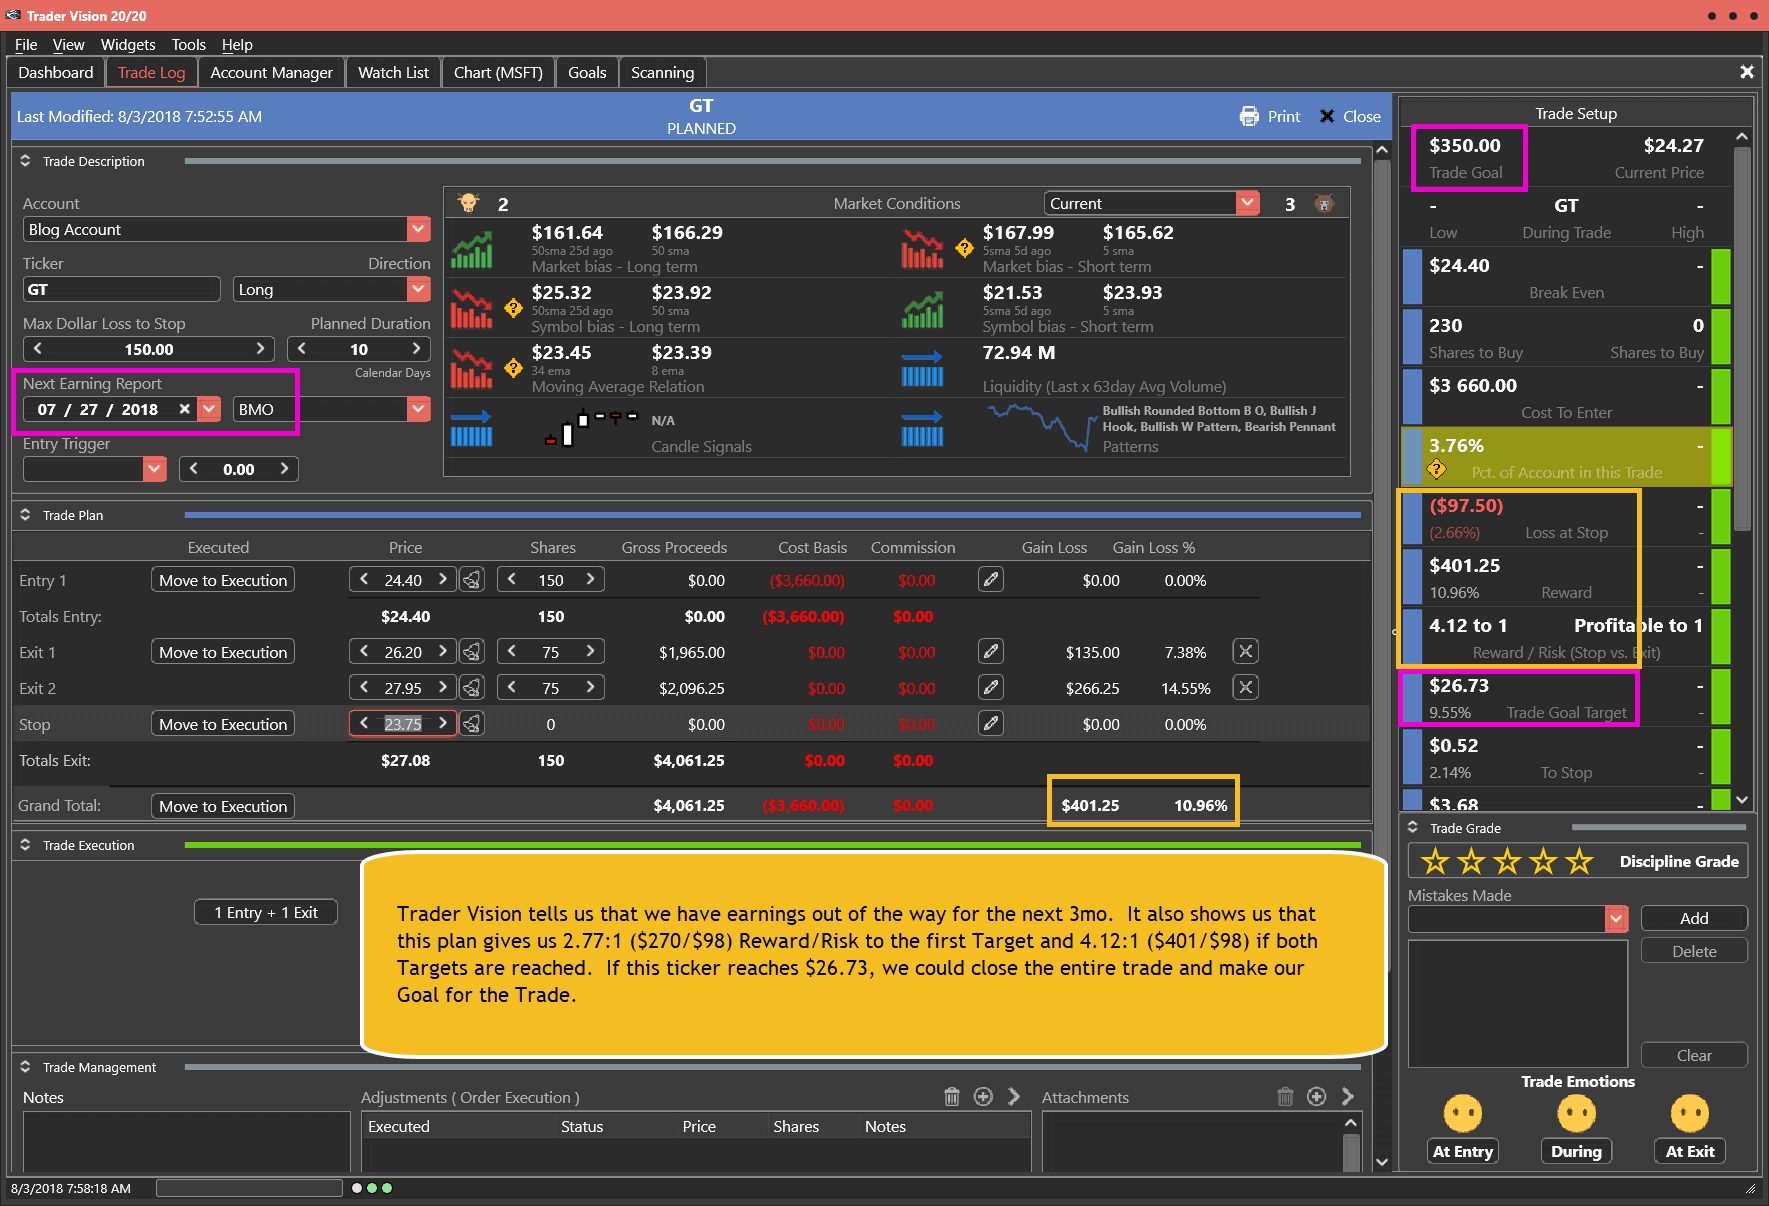 GT Trade Plan for 8-3-18